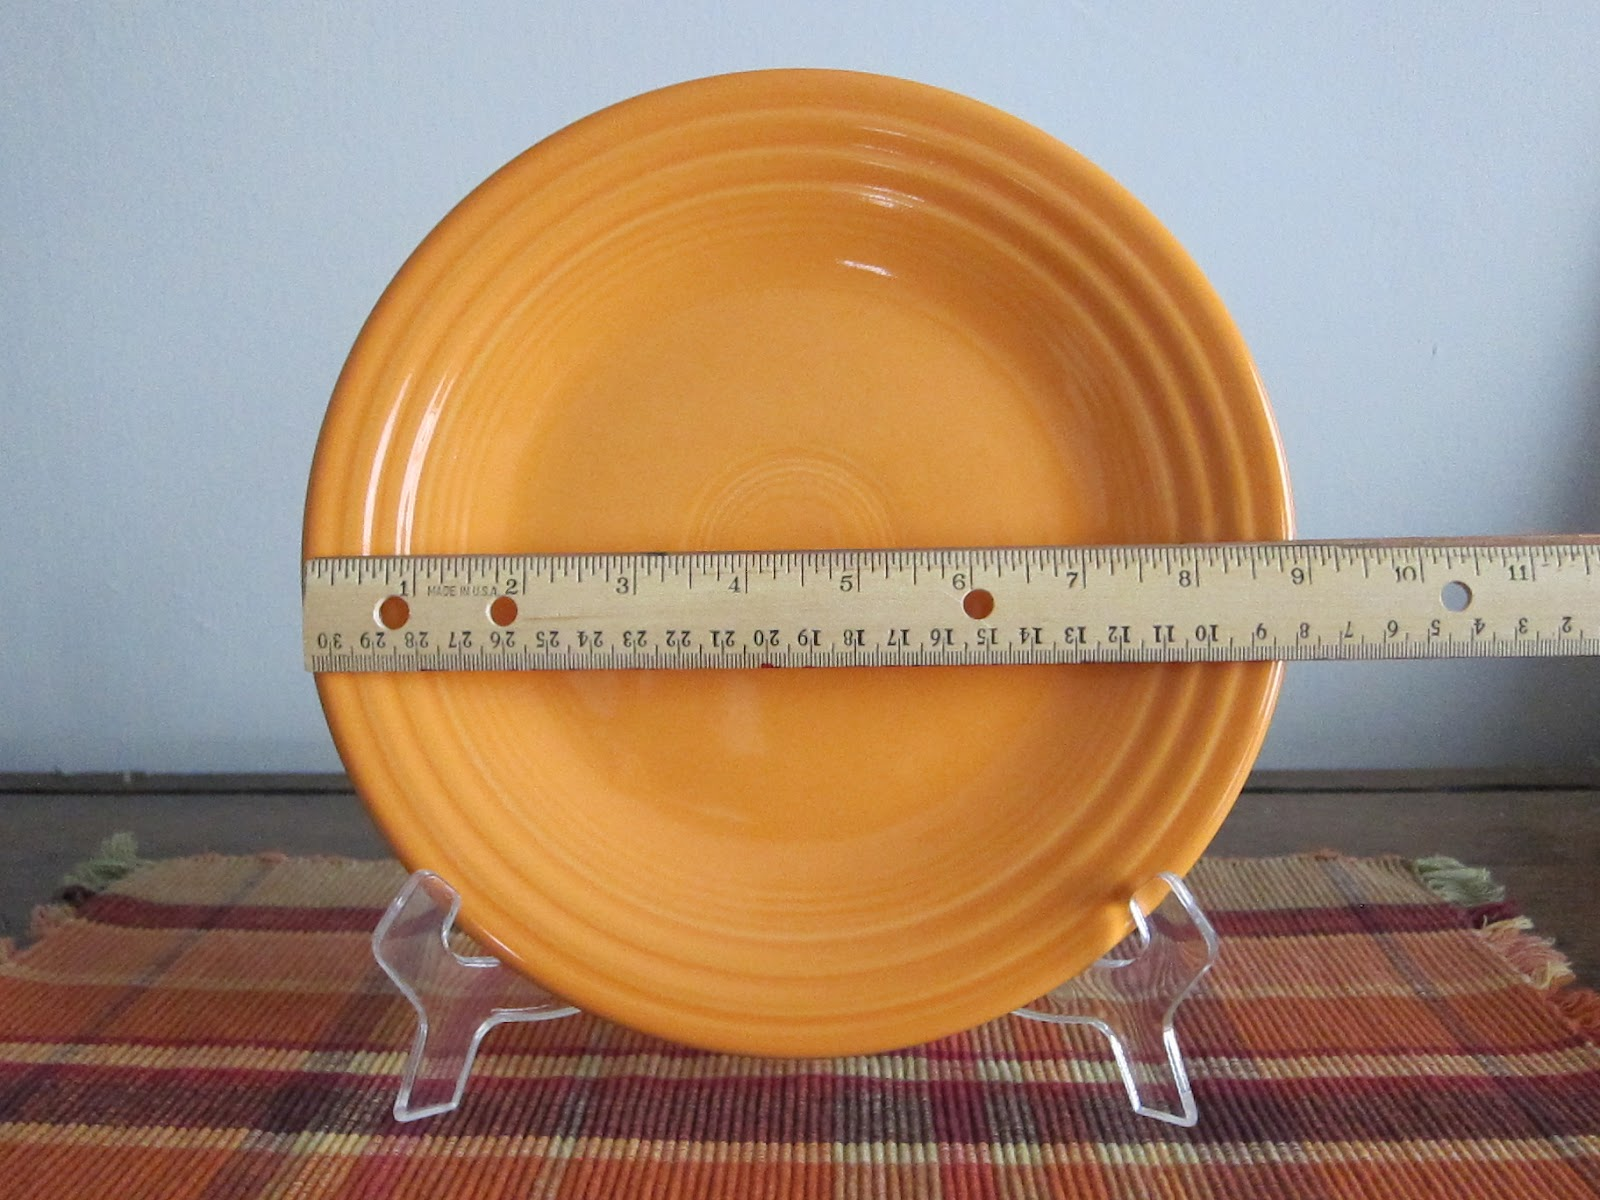 What is the 9 inch plate??? & The 9 inch plate: What is the 9 inch plate???